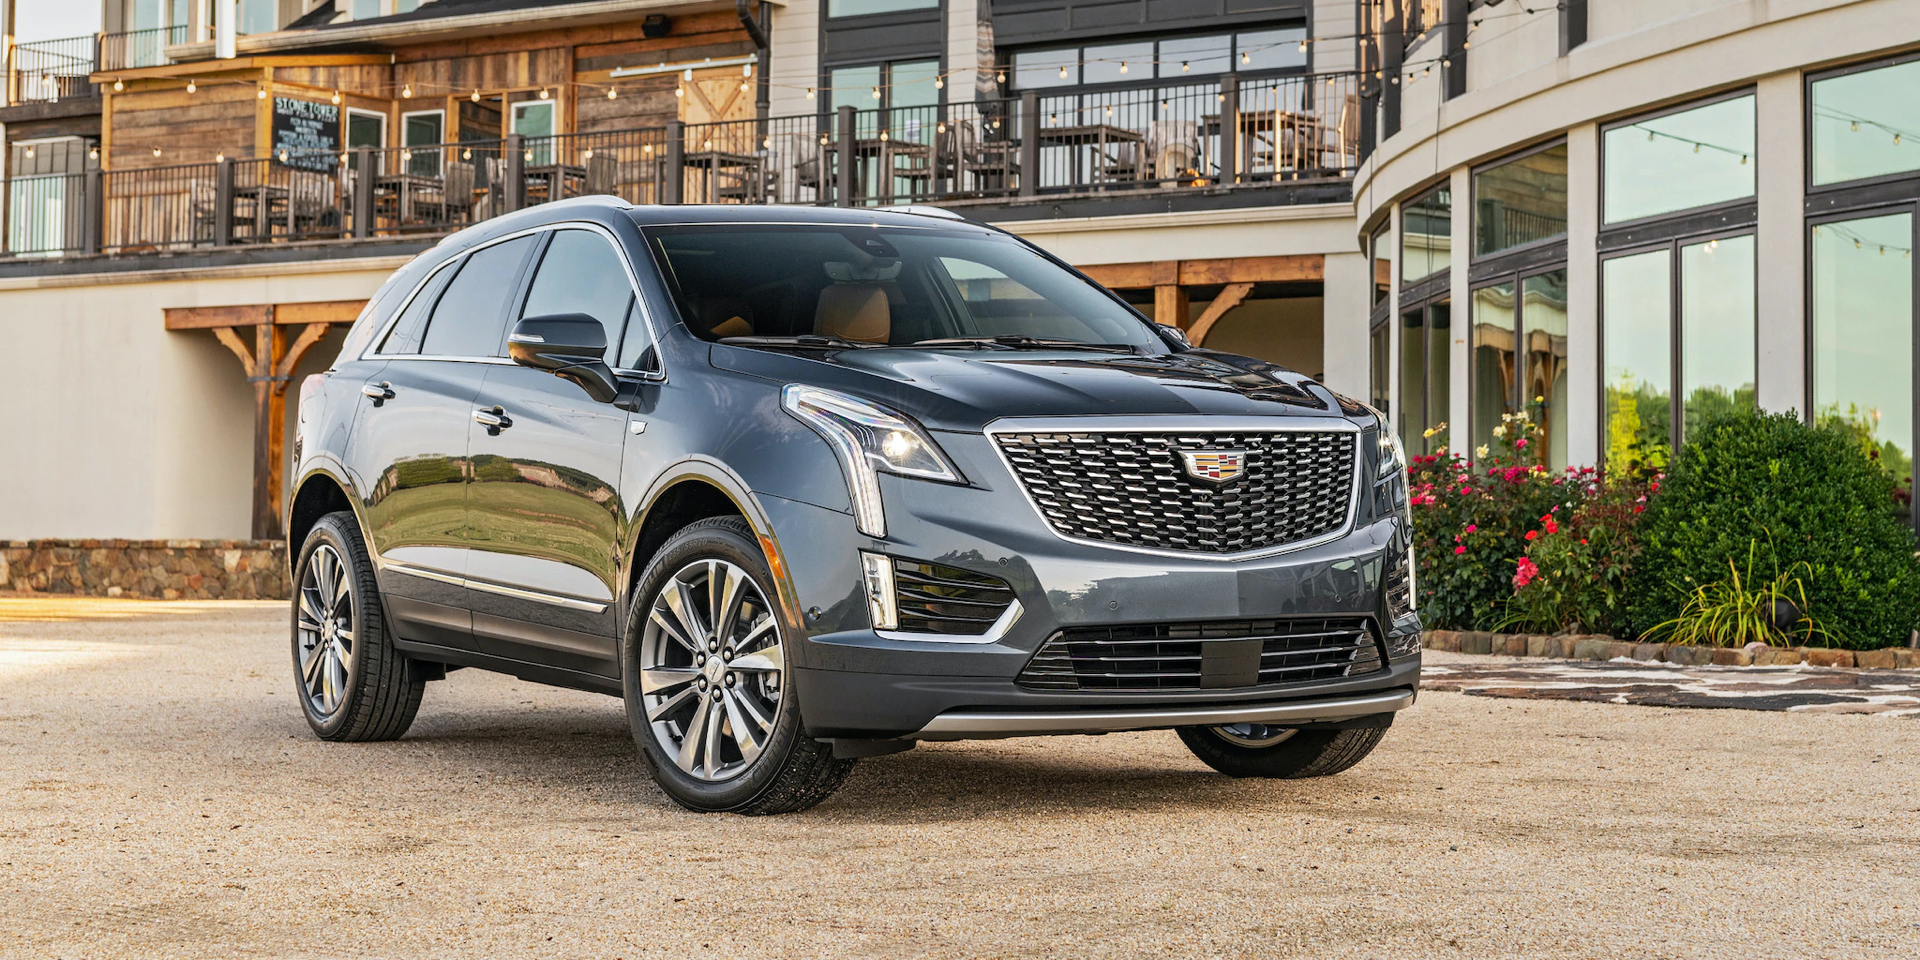 2020 Cadillac XT5 parked on gravel driveway